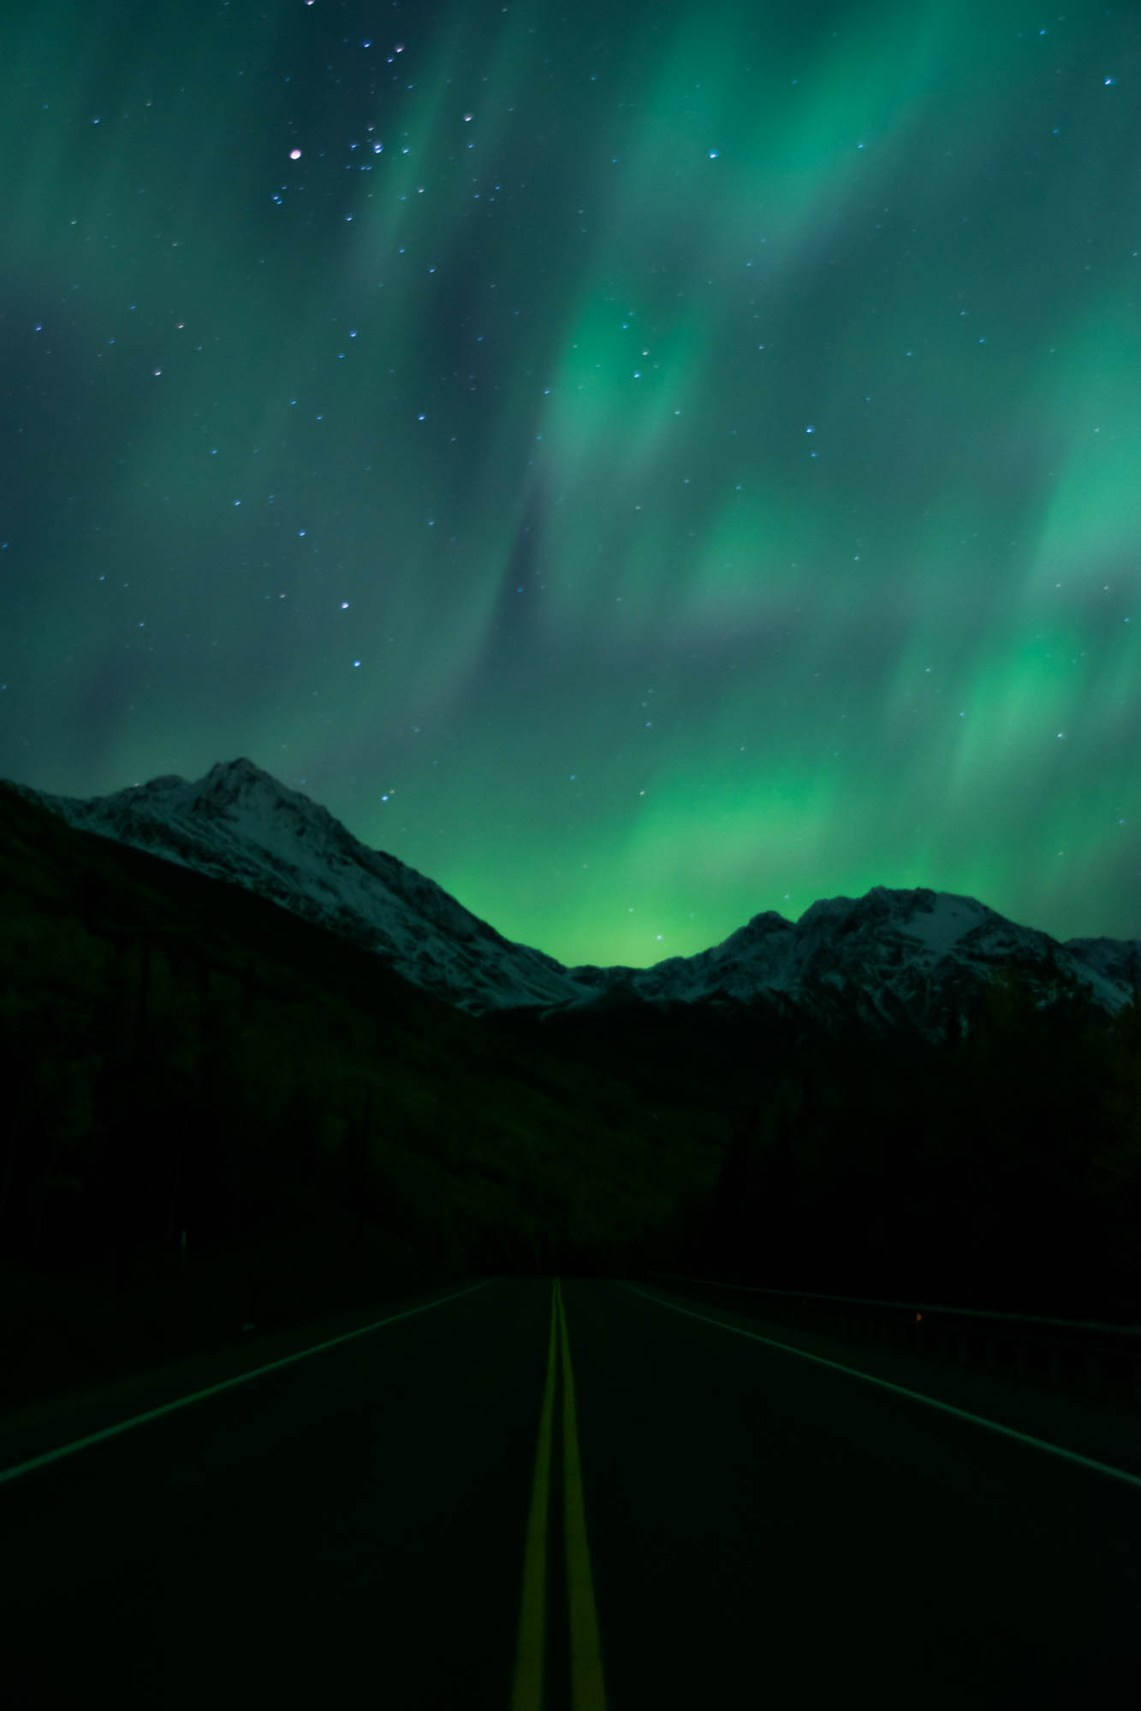 Green soft aurora shines among stars. Double yellow road lines are seen centered as the road approaches snow capped mountains in an Alaskan forest.